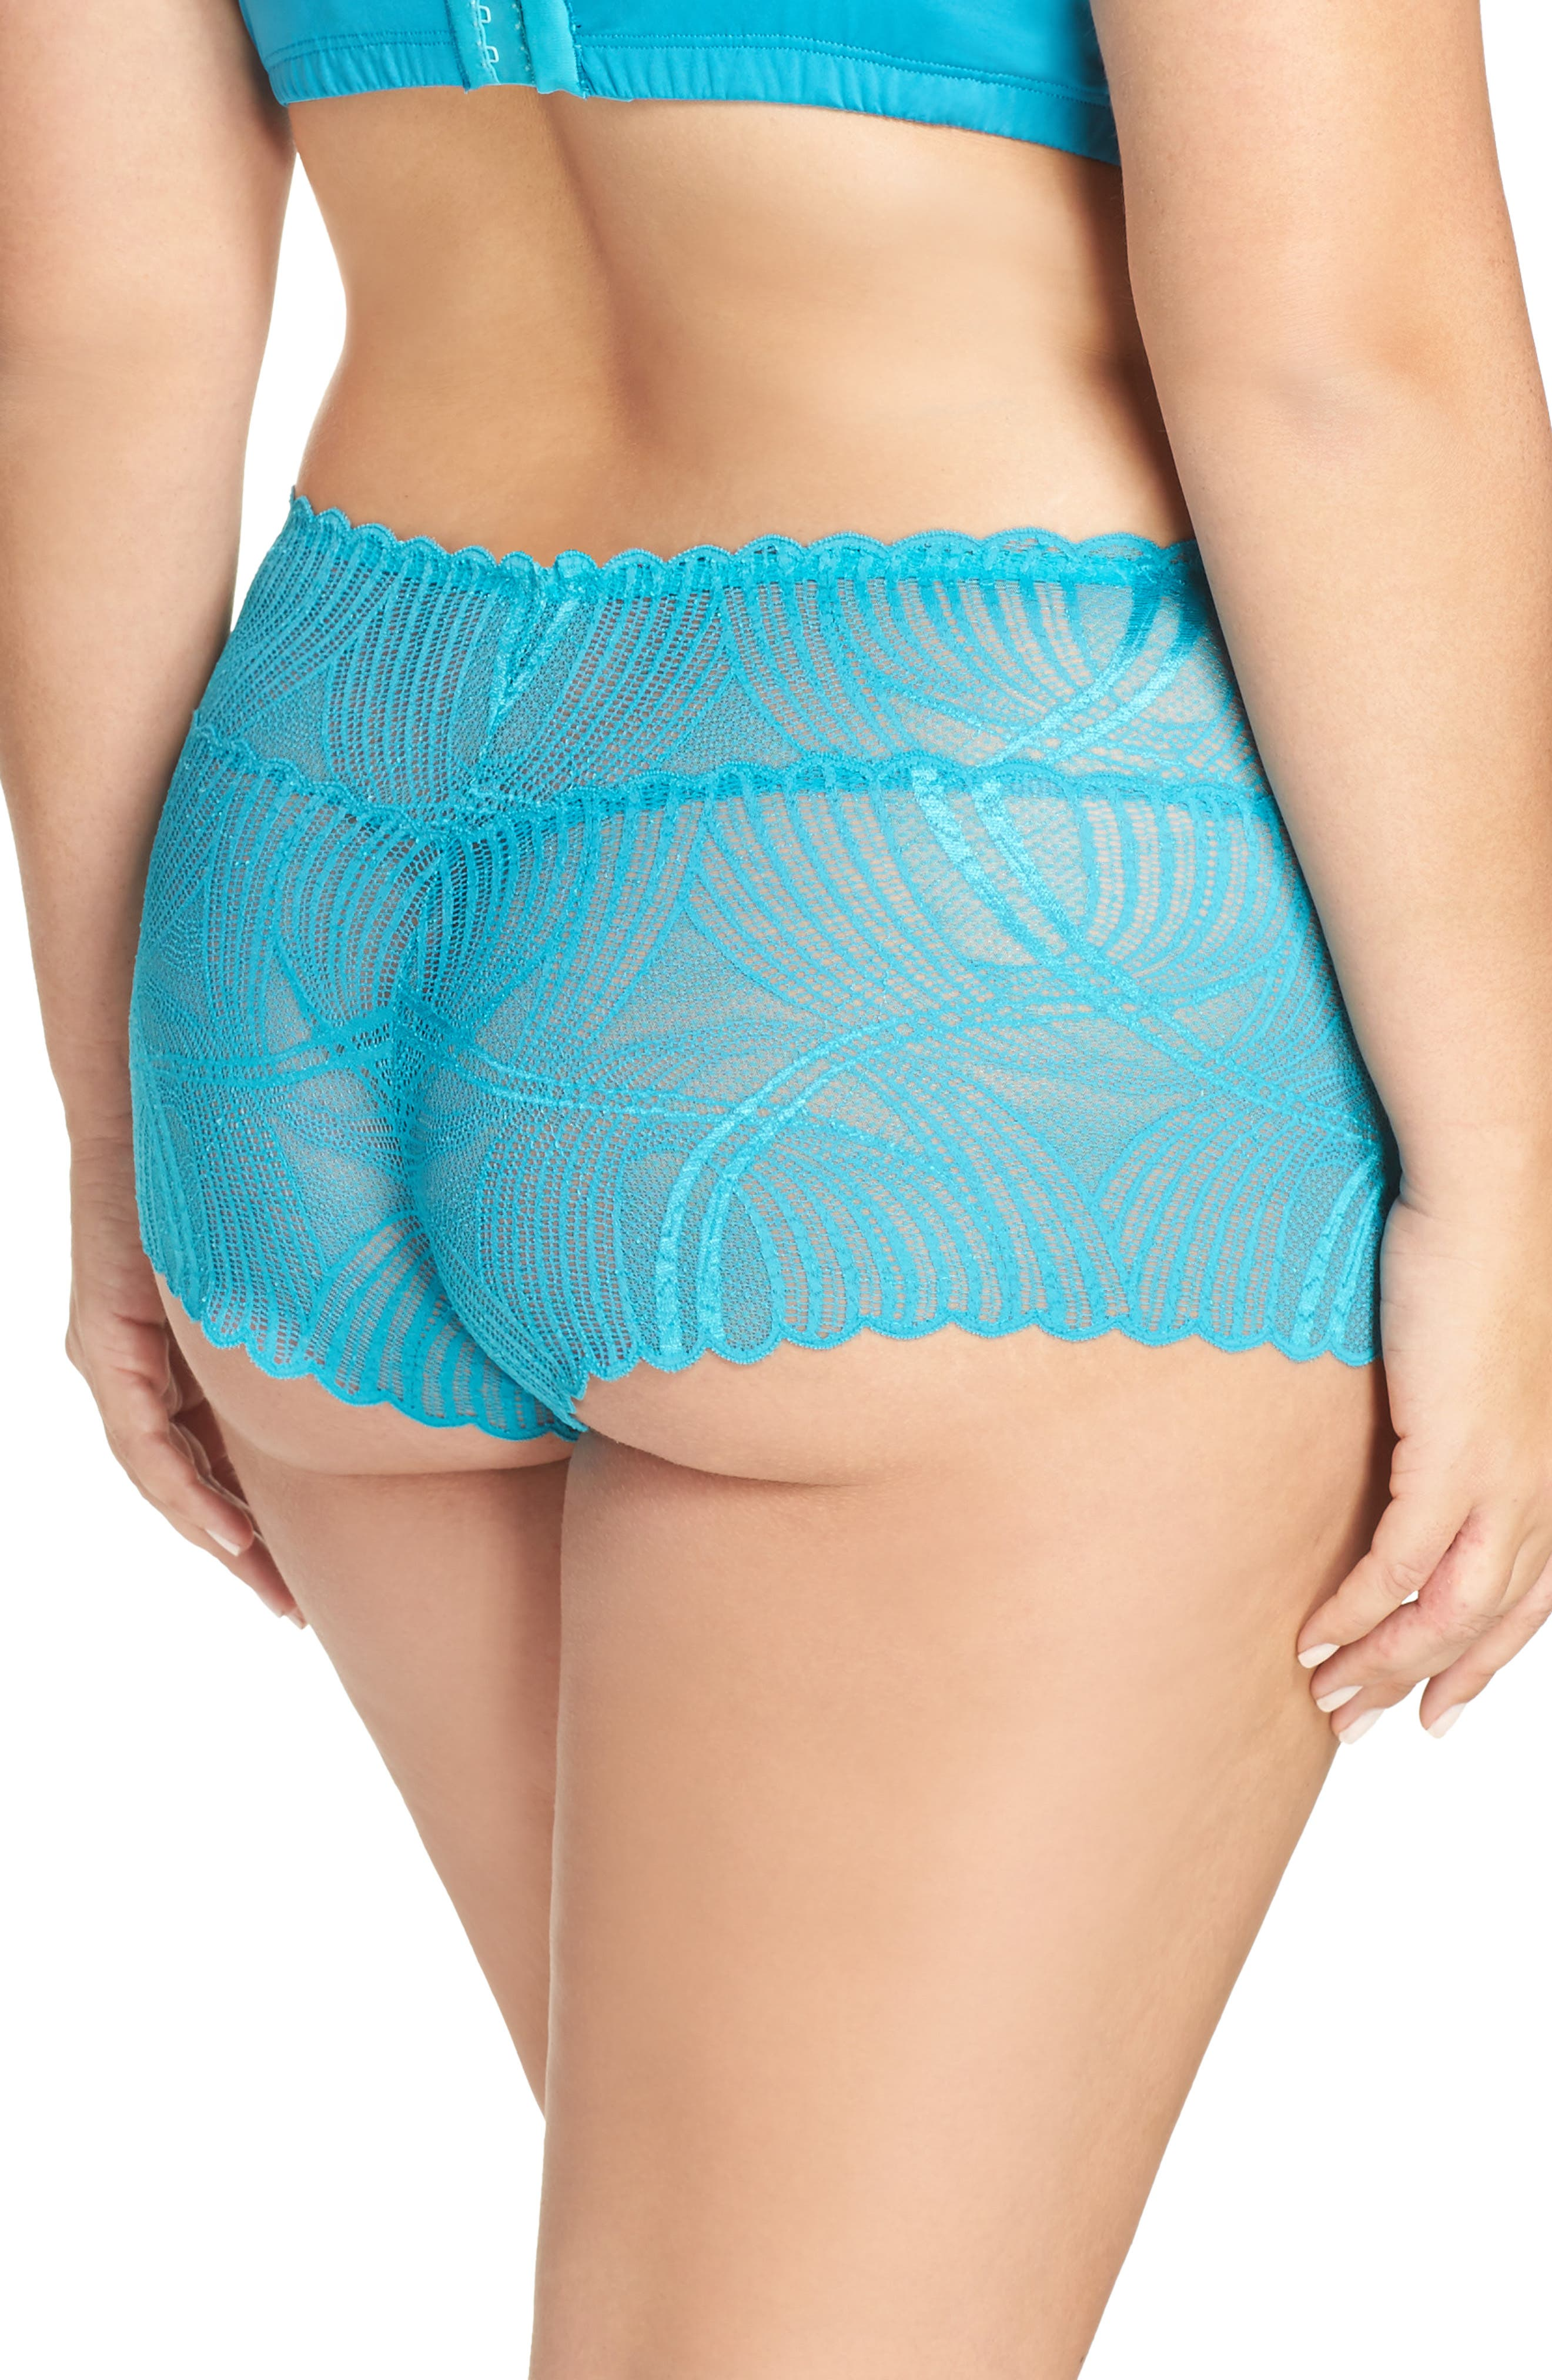 Minoa Naughtie Open Gusset Boyshorts,                             Alternate thumbnail 9, color,